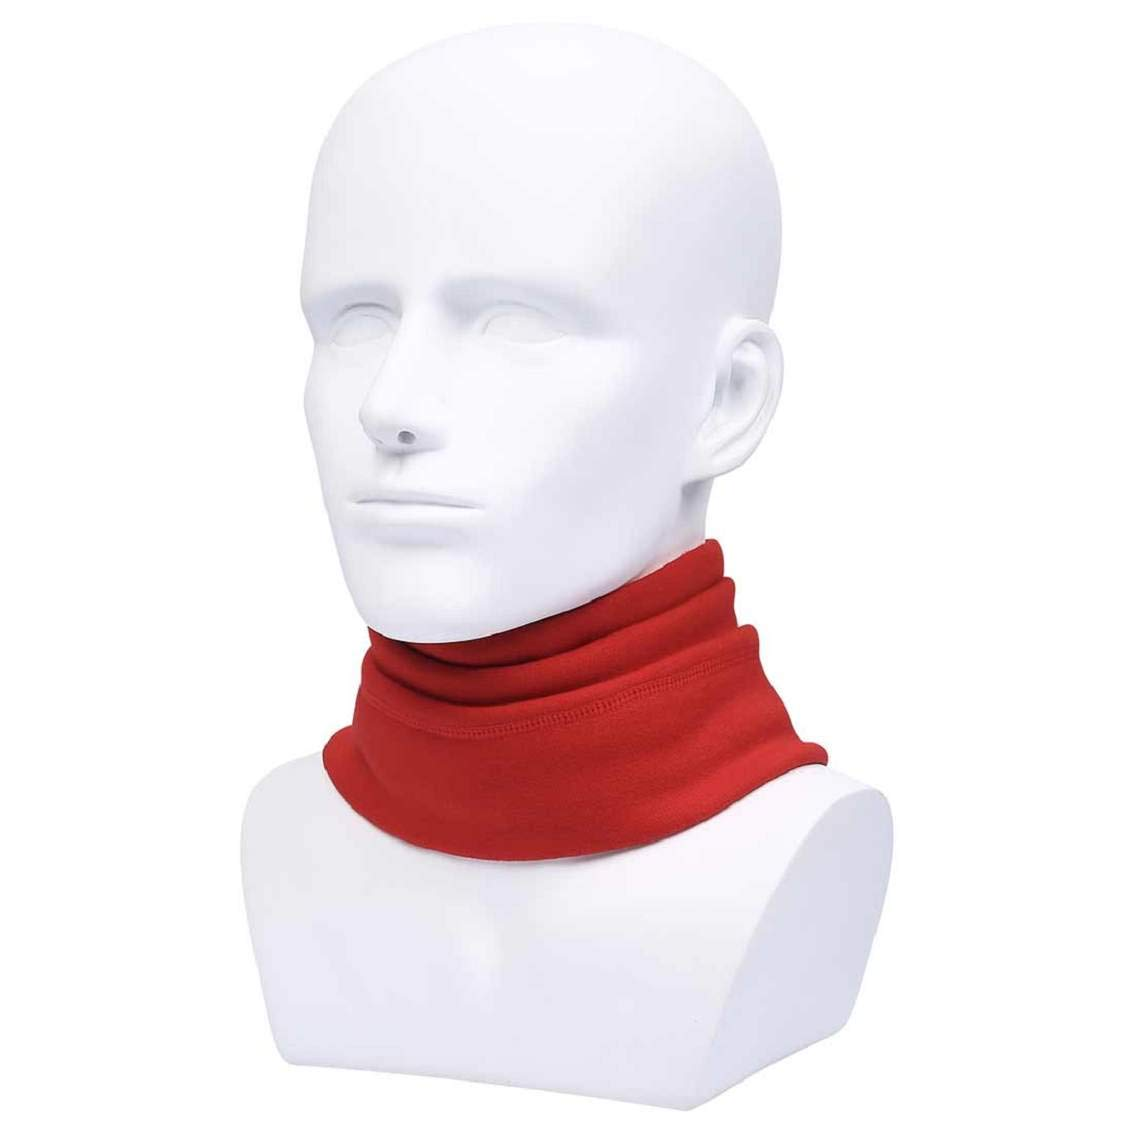 Red, One Size Heekpek Neck Warmer Loop Face Scarf Men Multifunctional Headwear Snood Scarf Adjustable Face Warmer Neck Warmer Unisex Thick Neck Tube Scarf Neck Warmer Motorcycle